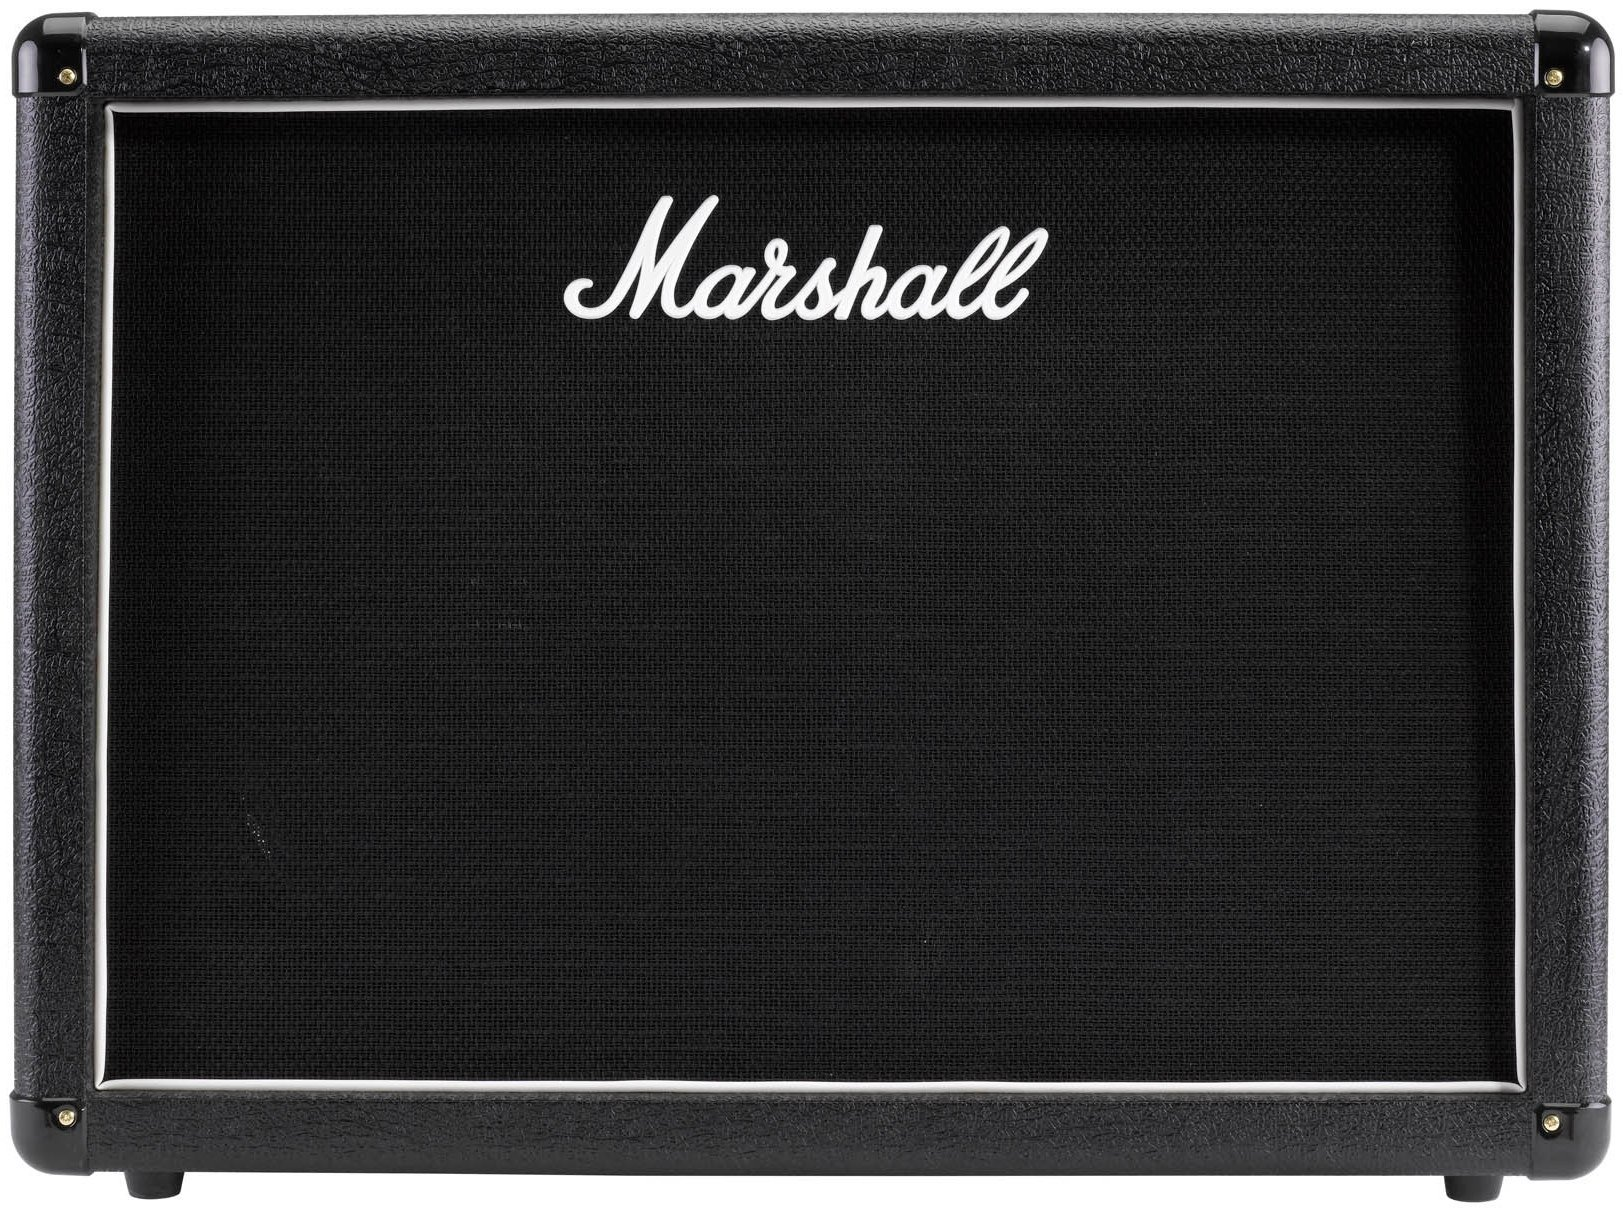 Marshall MX Series MX212 2 x 12 Inches 160 Watt Guitar Amplifier Speaker Cabinet by Marshall Amps